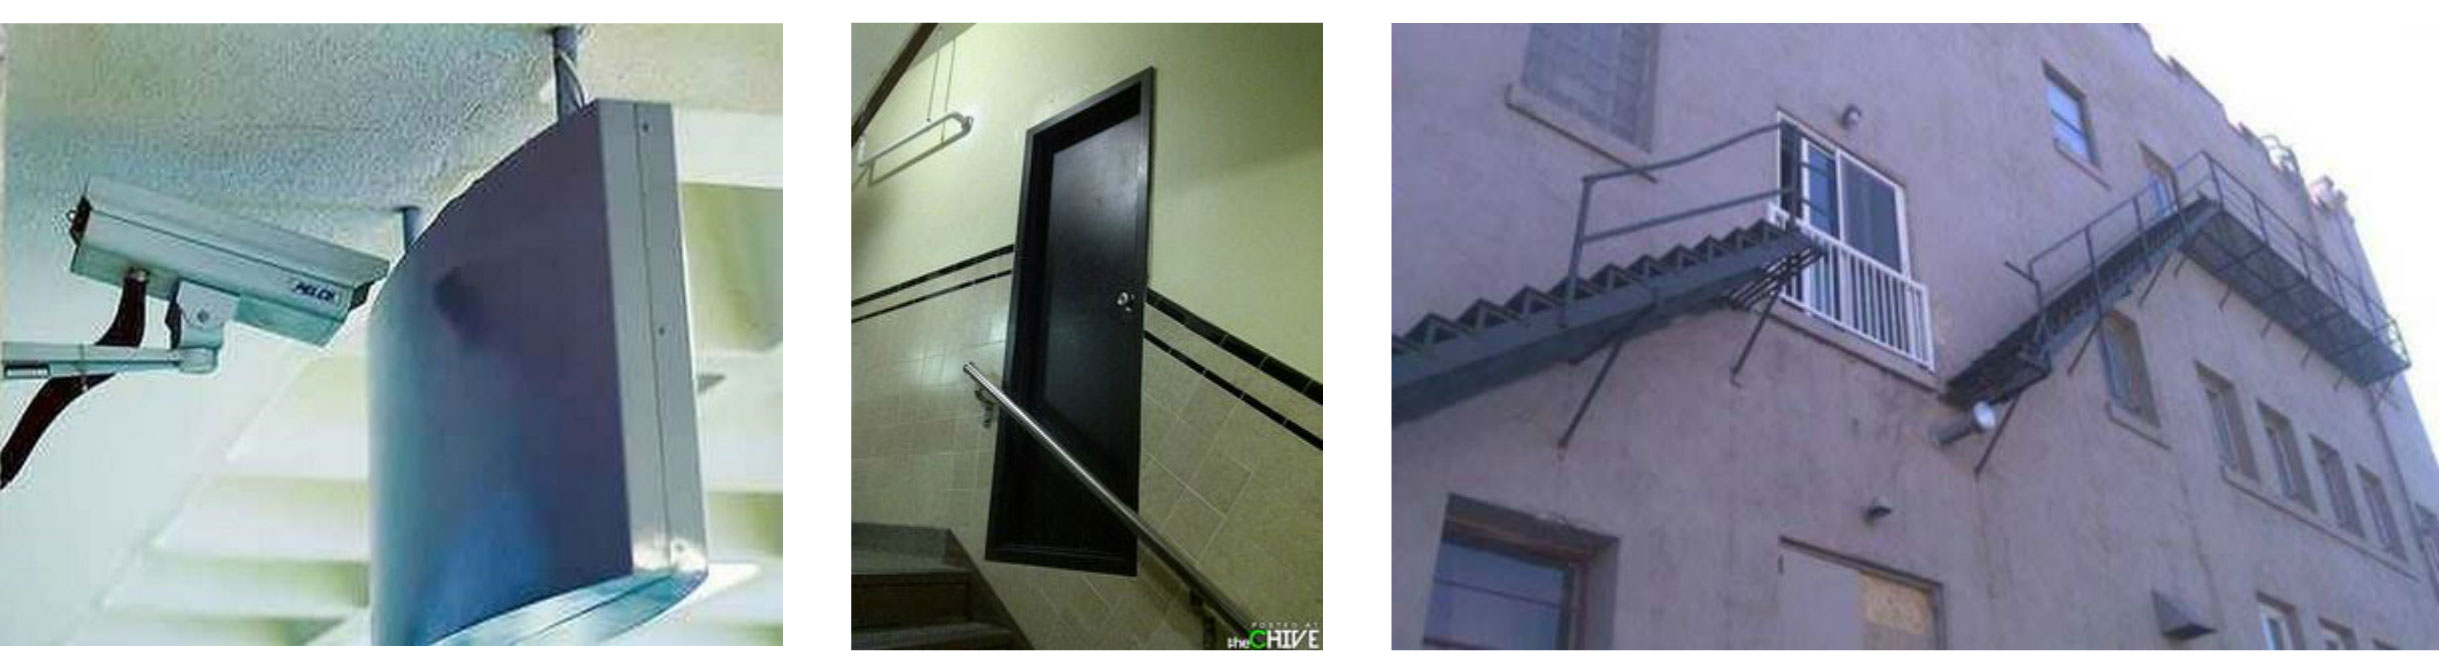 A photo of unsuccessful examples of facility design installations